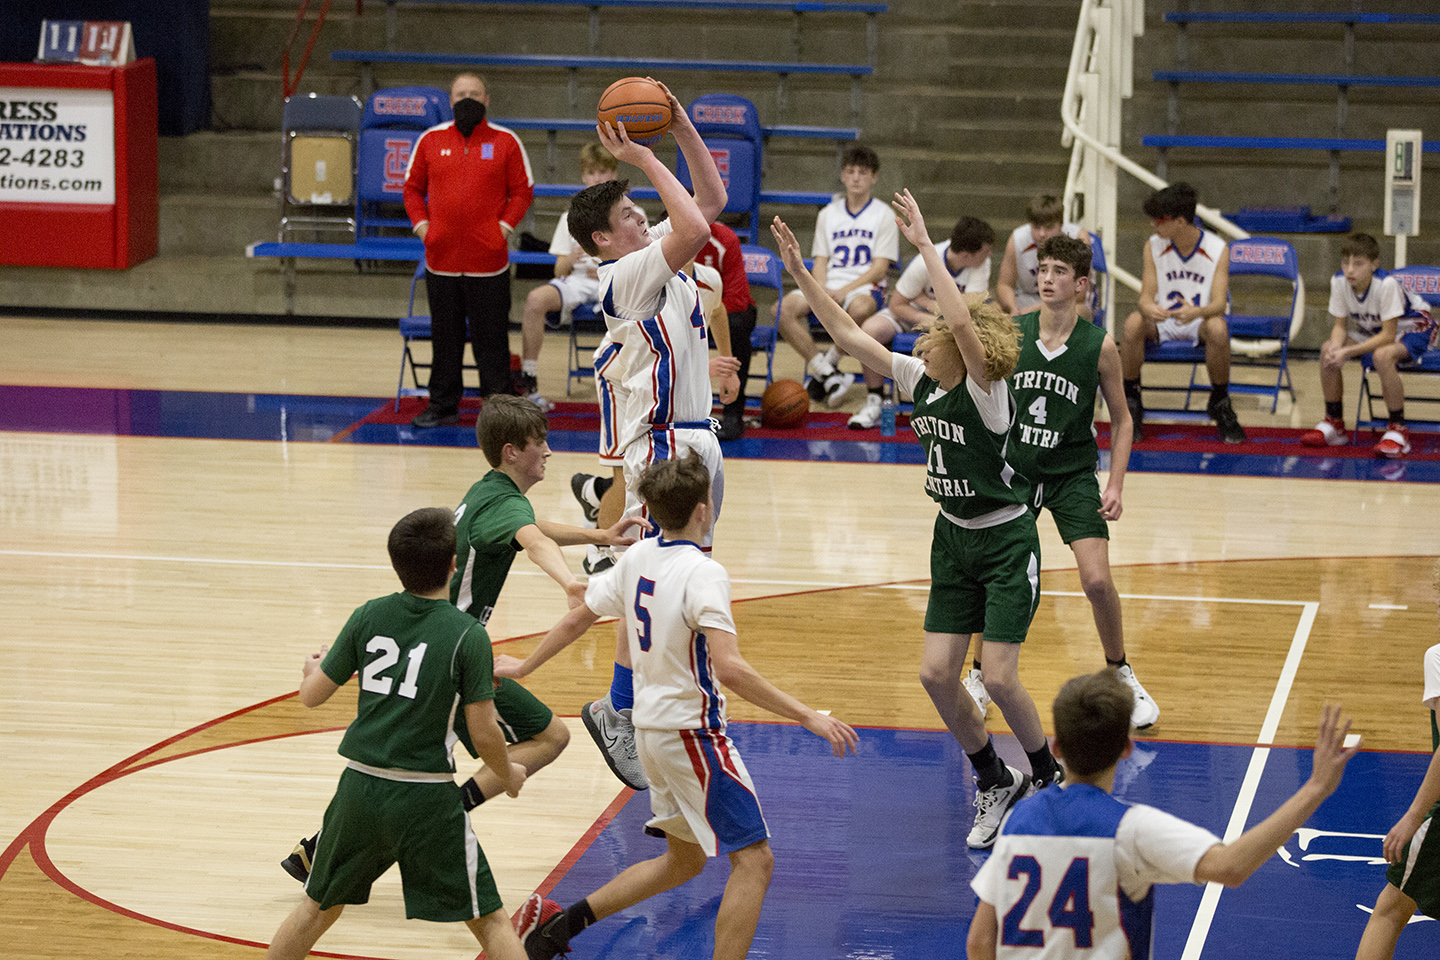 8th Grade Boys Basketball vs. Triton Central